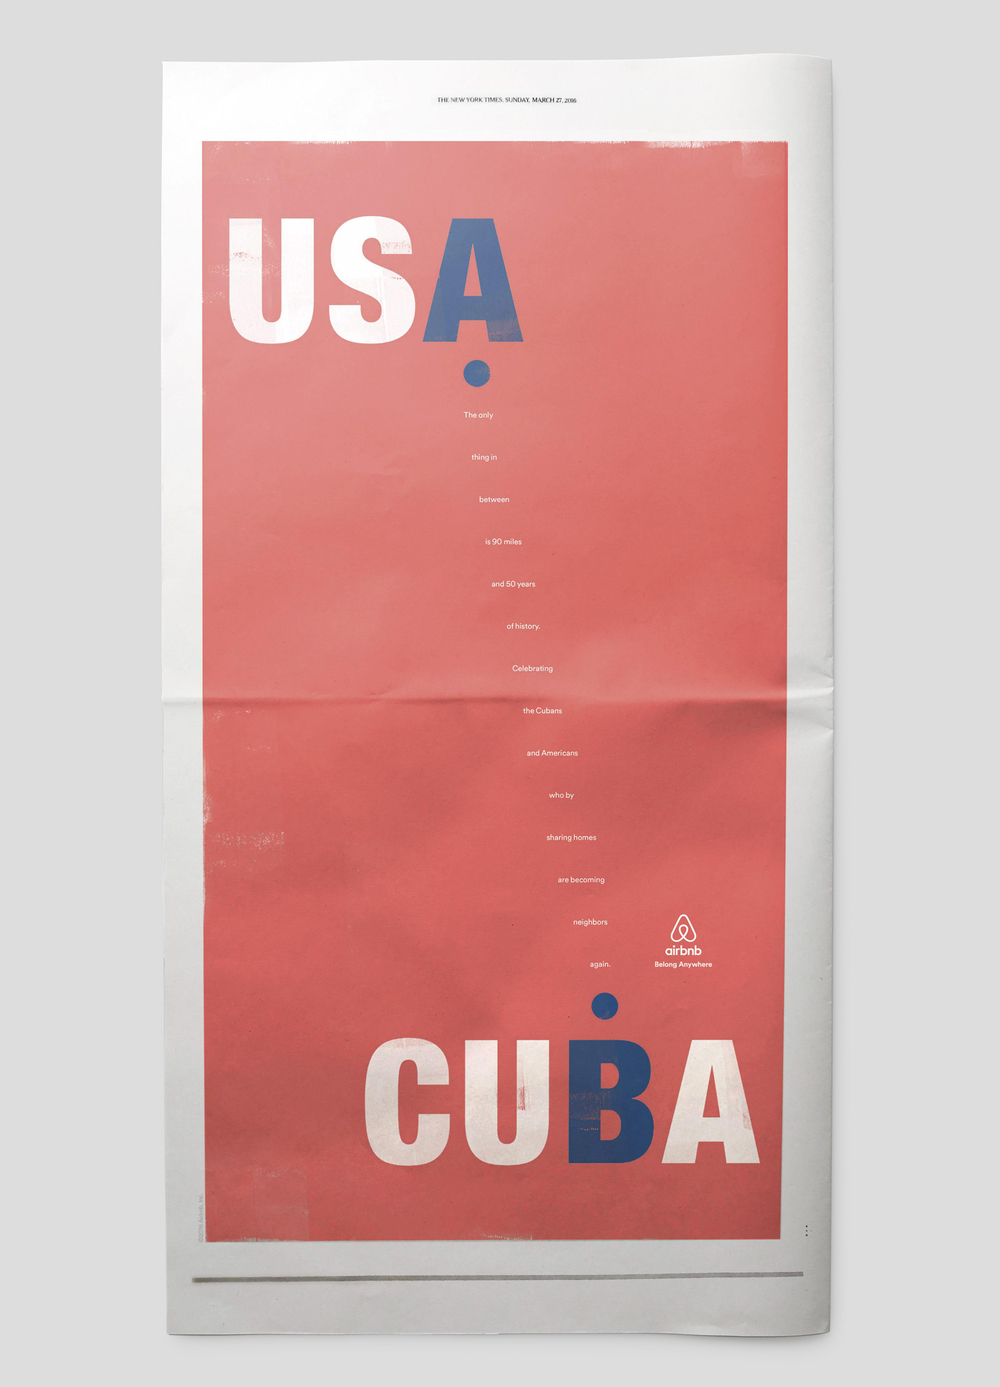 Airbnb Cuba Newspaper Ad: Layout | Production